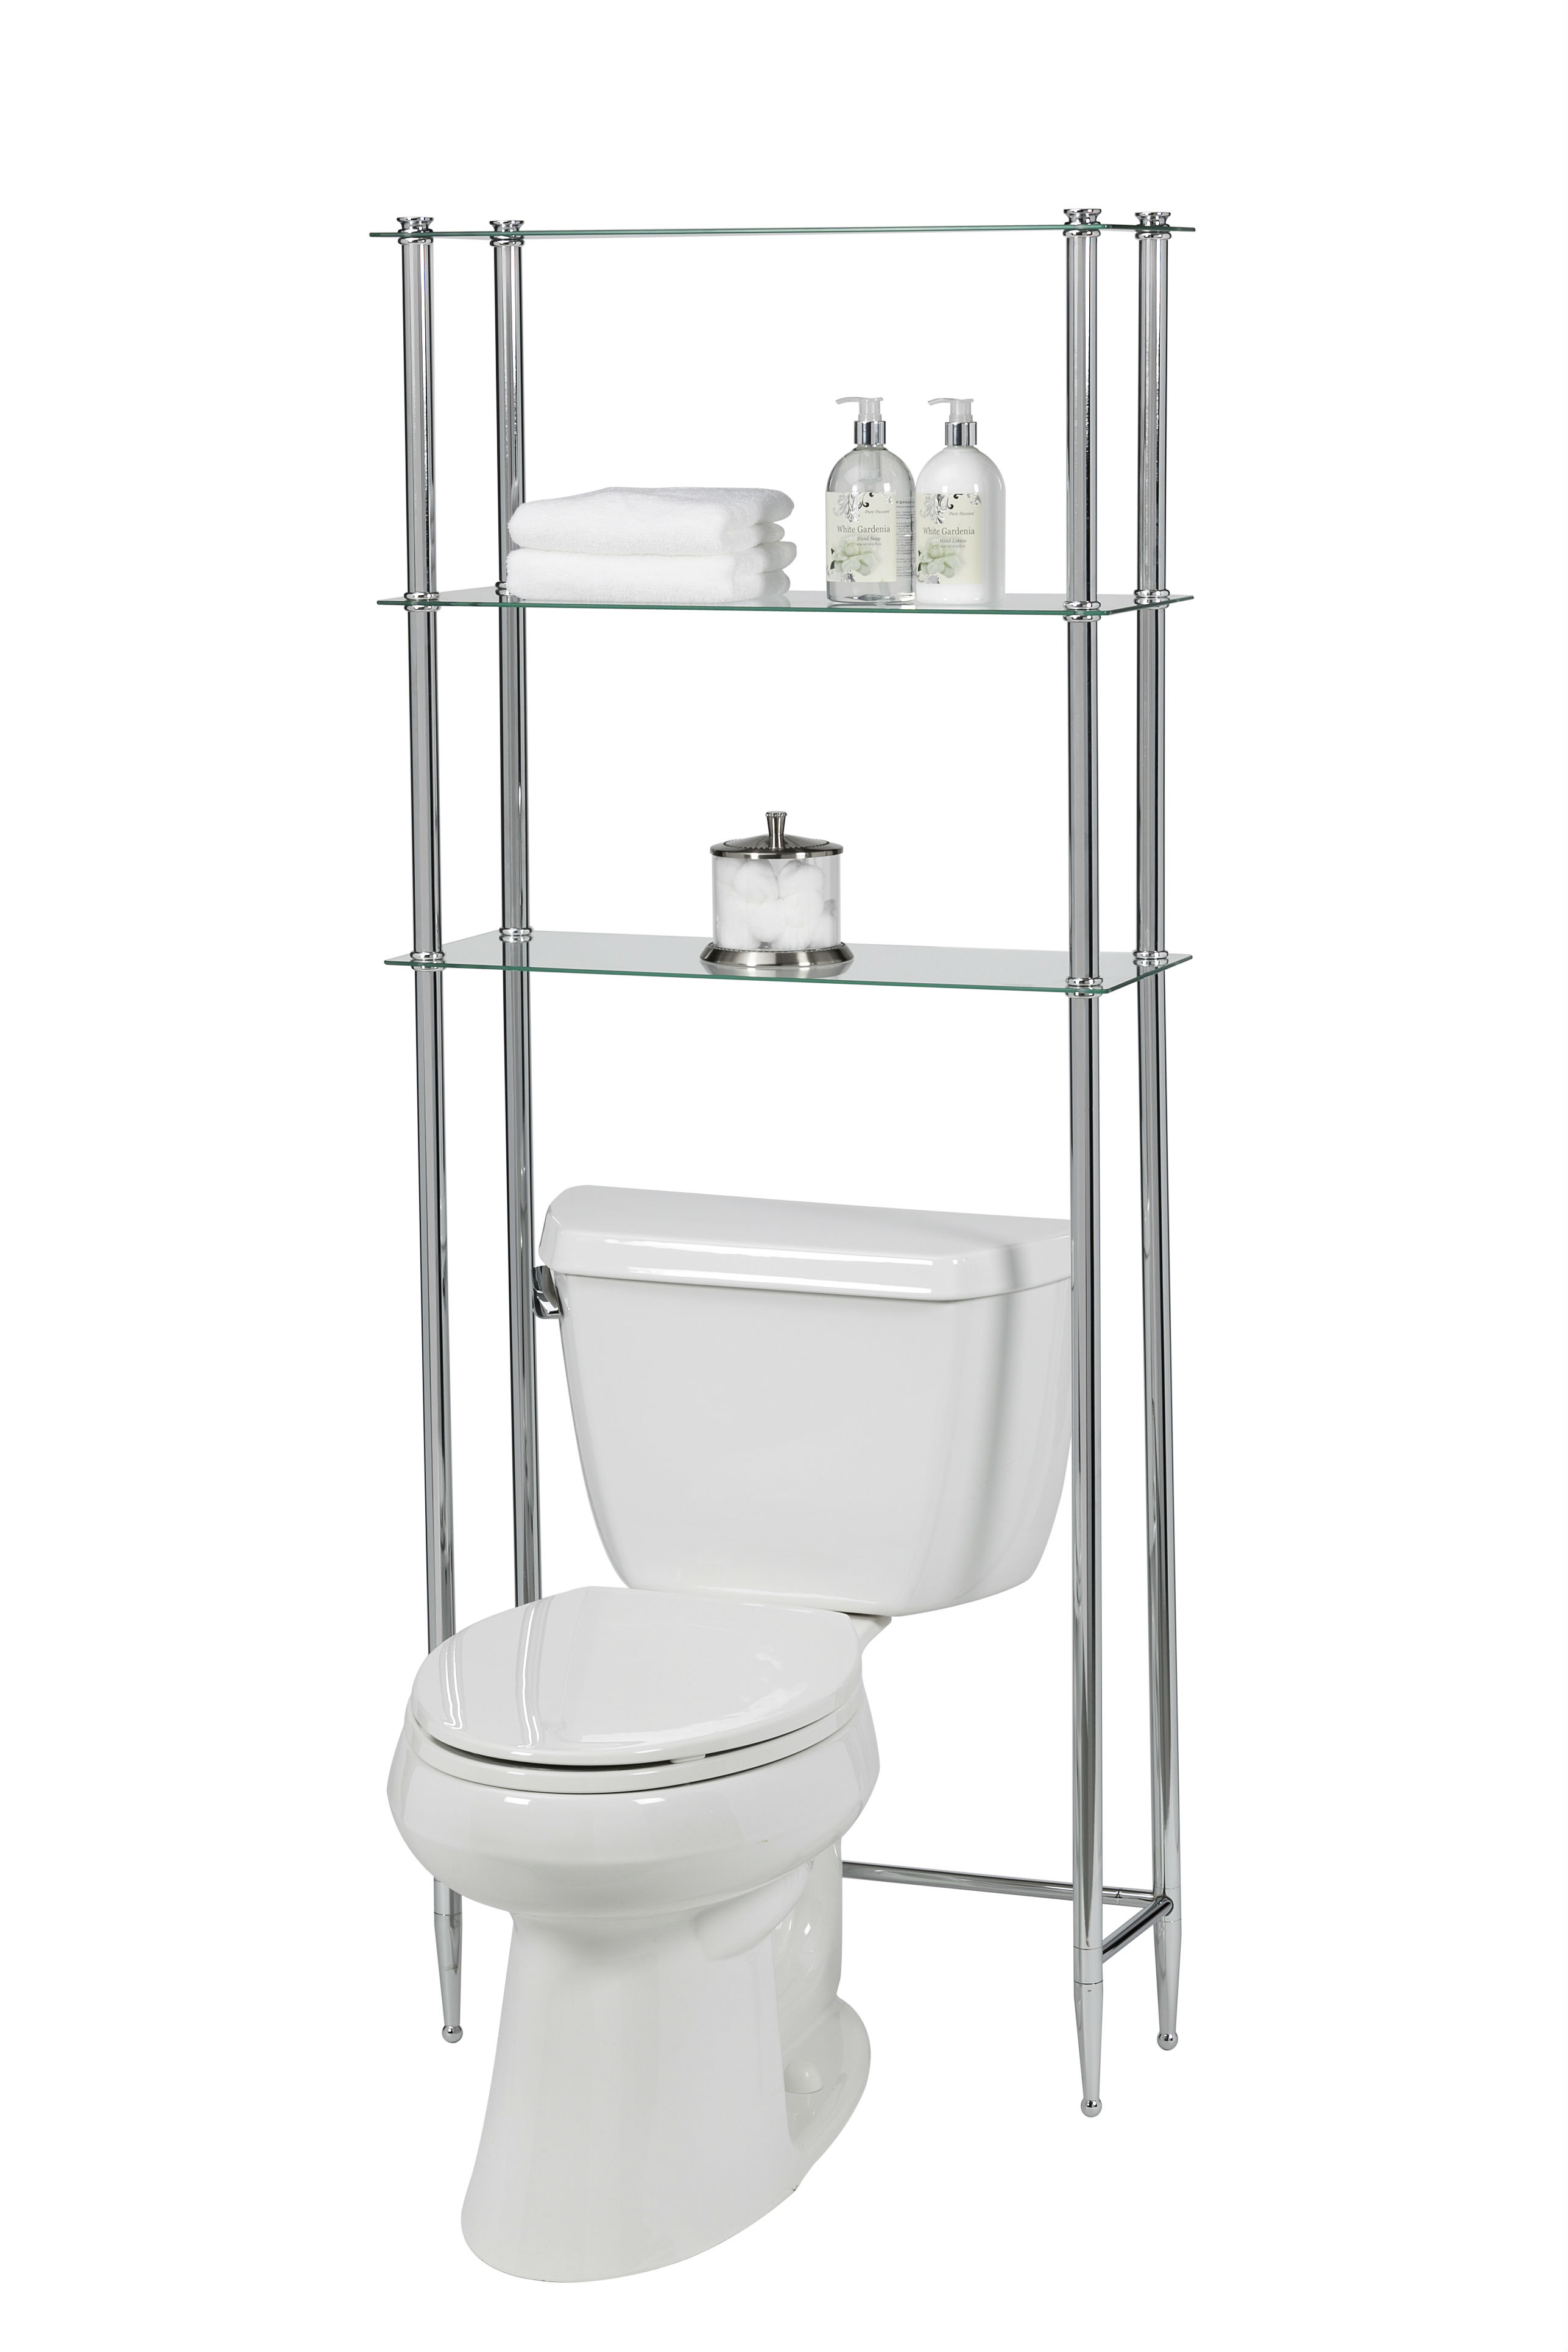 bathroom space p spacesaver to saver expand tayla click shelves